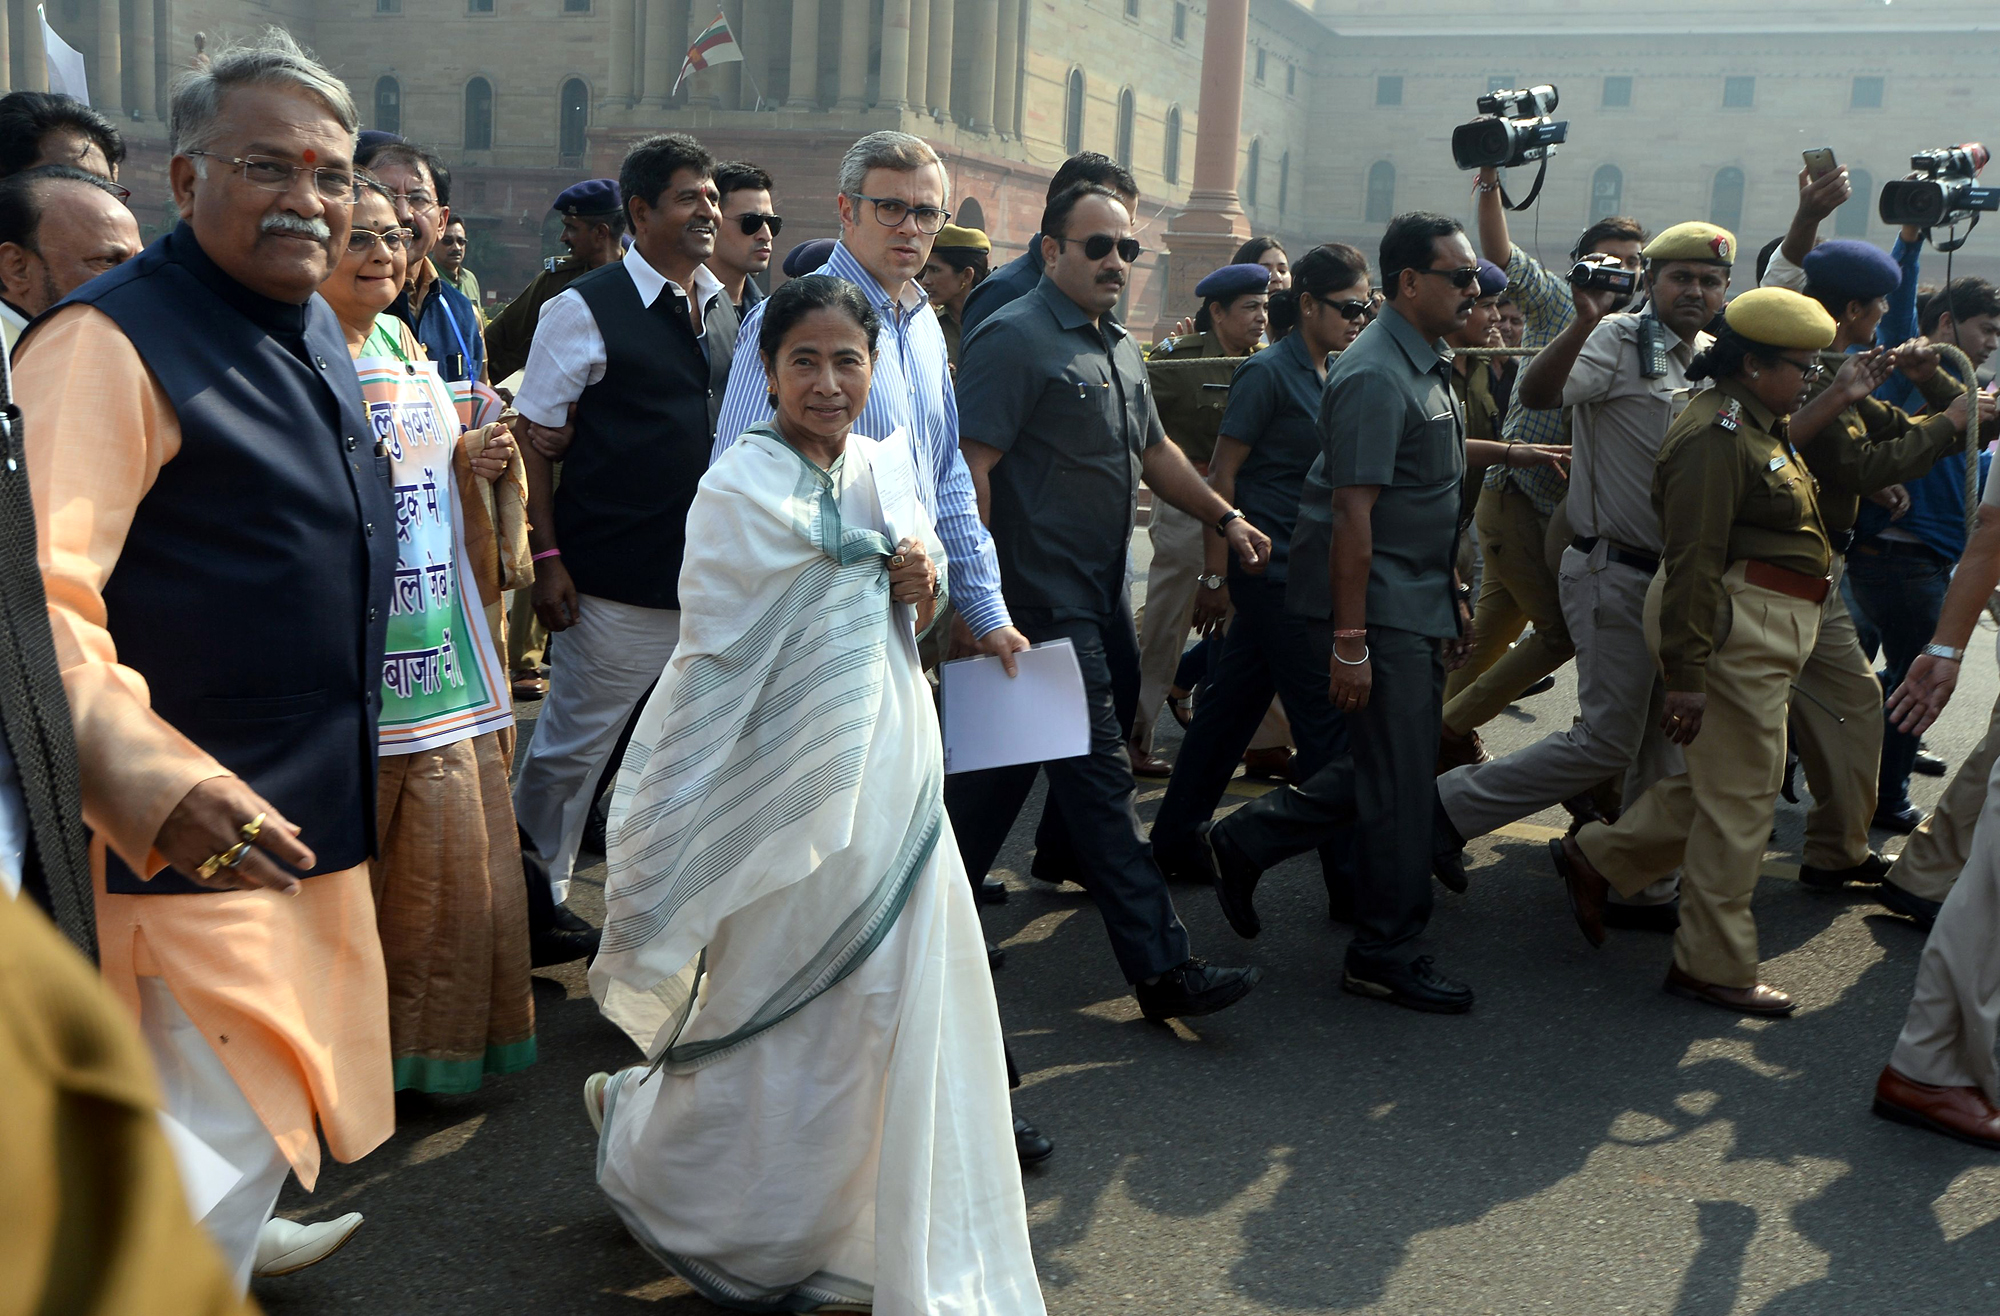 West Bengal Chief Minister and leader of opposition Trinamul Congress (TMC) Mamata Banerjee (C) walks with former chief minister of Jammu and Kashmir Omar Abdullah (back C) and other politician towards the President's House in protest against the removal of high denomination currency notes from circulation in New Delhi on November 16, 2016. Long queues formed outside banks in India since the government's shock decision to withdraw the two largest denomination notes from circulation.  / AFP PHOTO / SAJJAD HUSSAIN